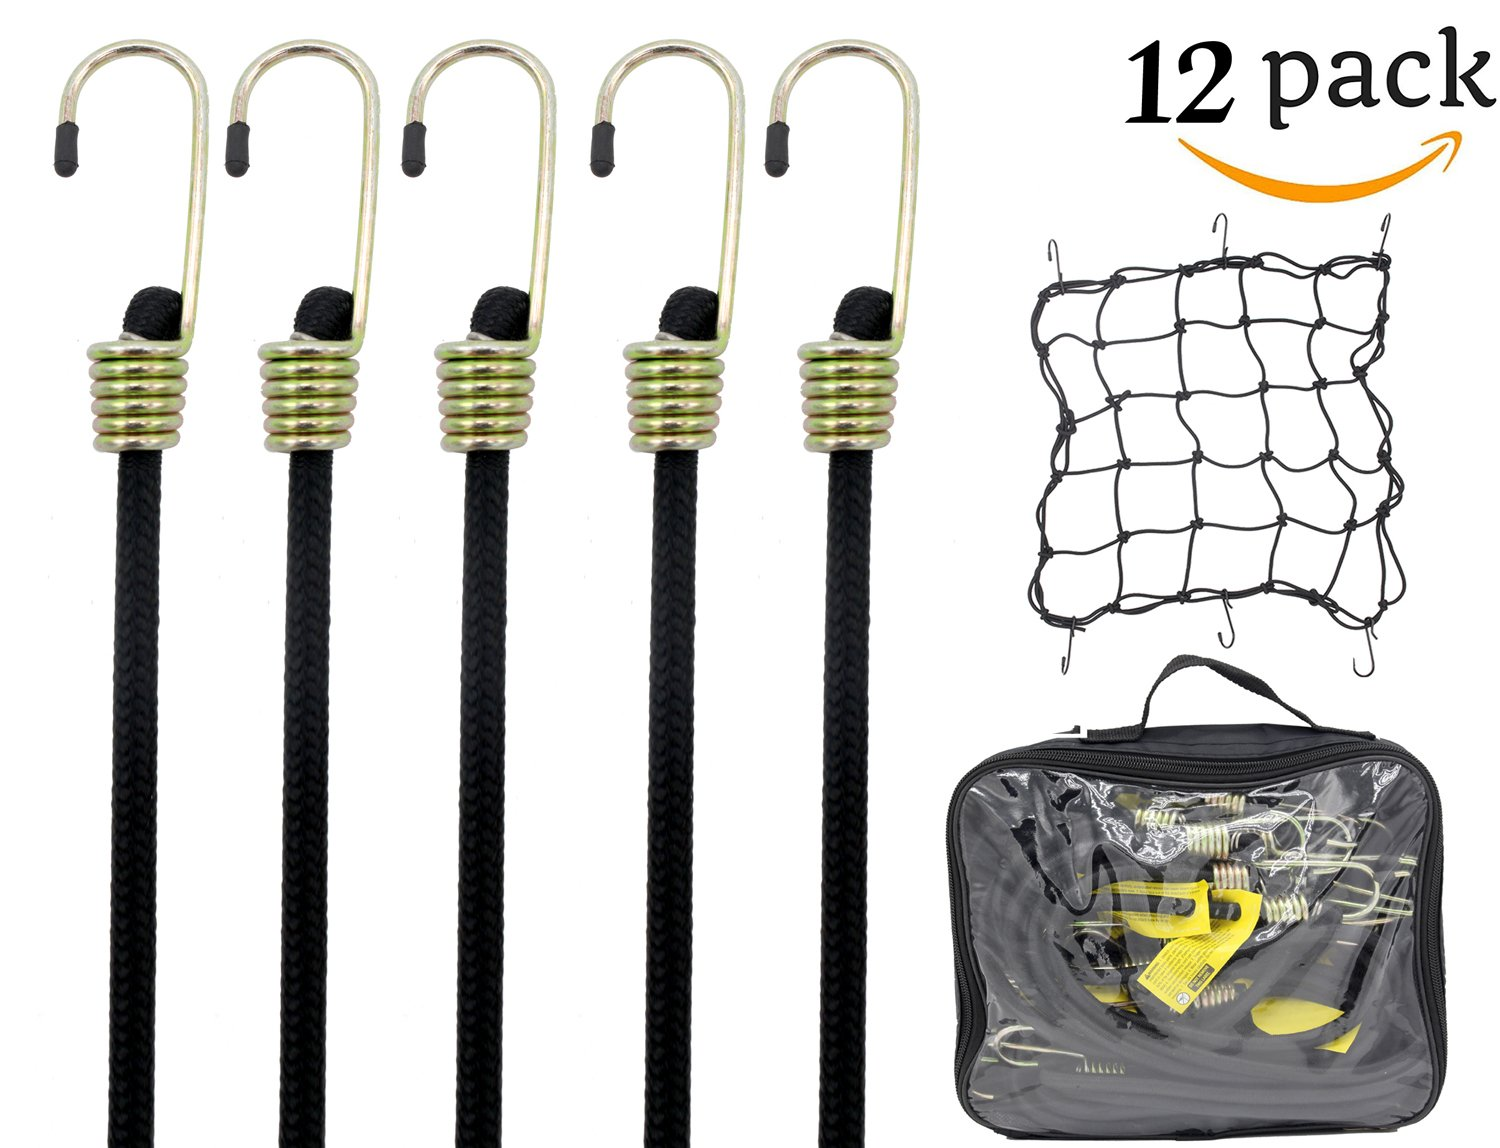 Blissun Heavy Duty Bungee Cord with Hooks, 36'' Industrial Quality Bungee Core, Free Bonus Cargo Net, All Black (12 Pack)